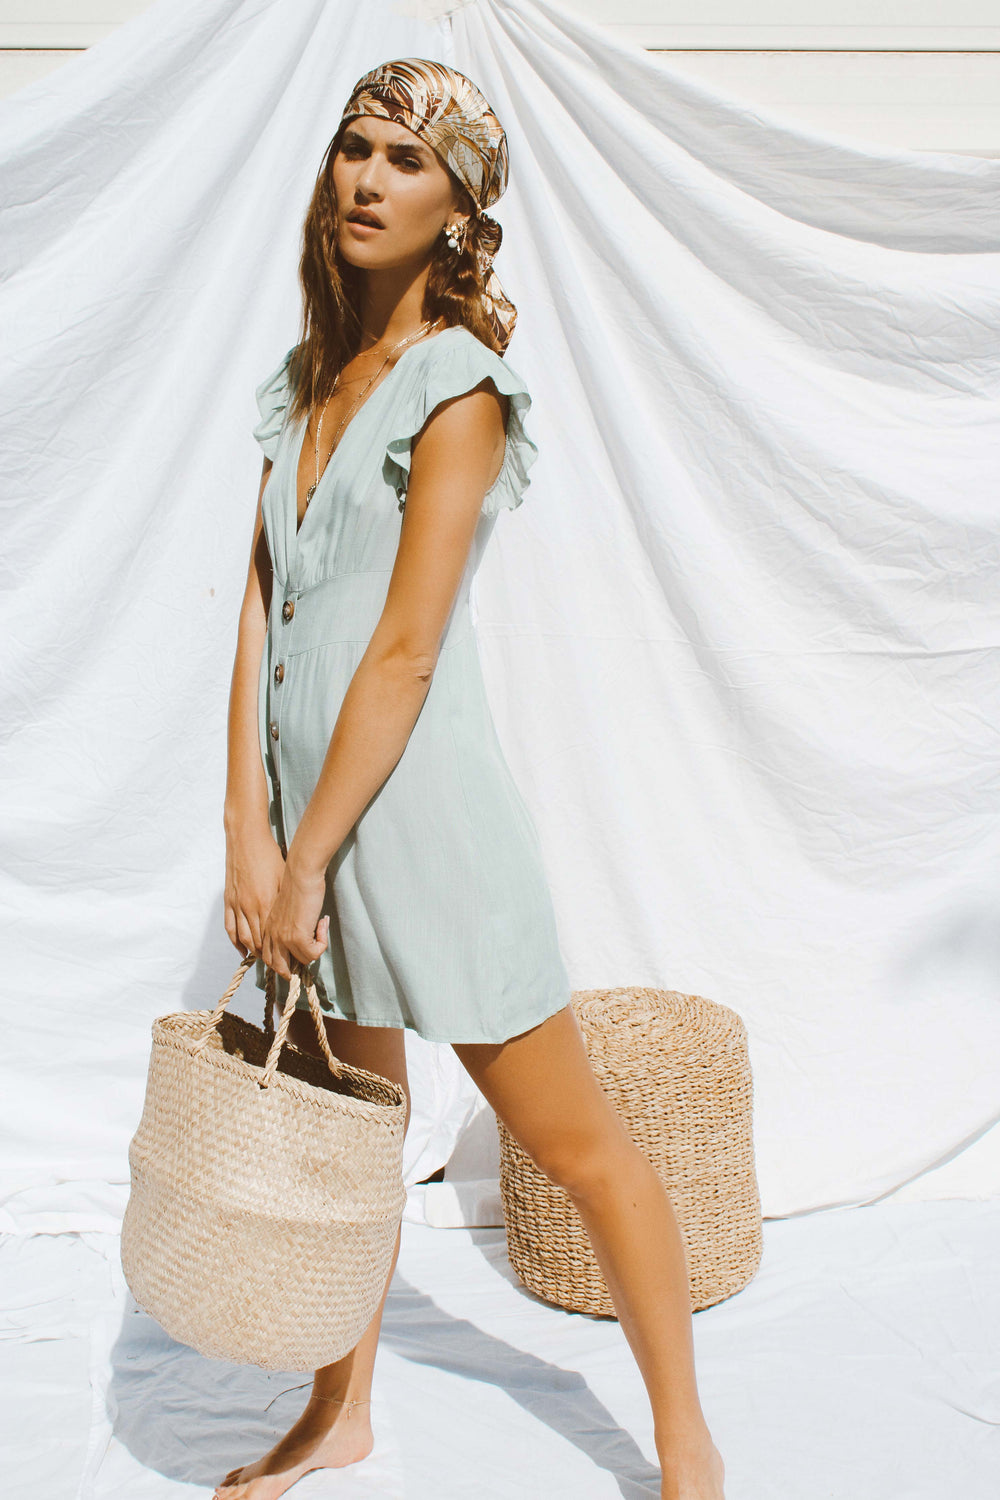 EMALA DRESS | Women's Online Shopping | CHICLEFRIQUE